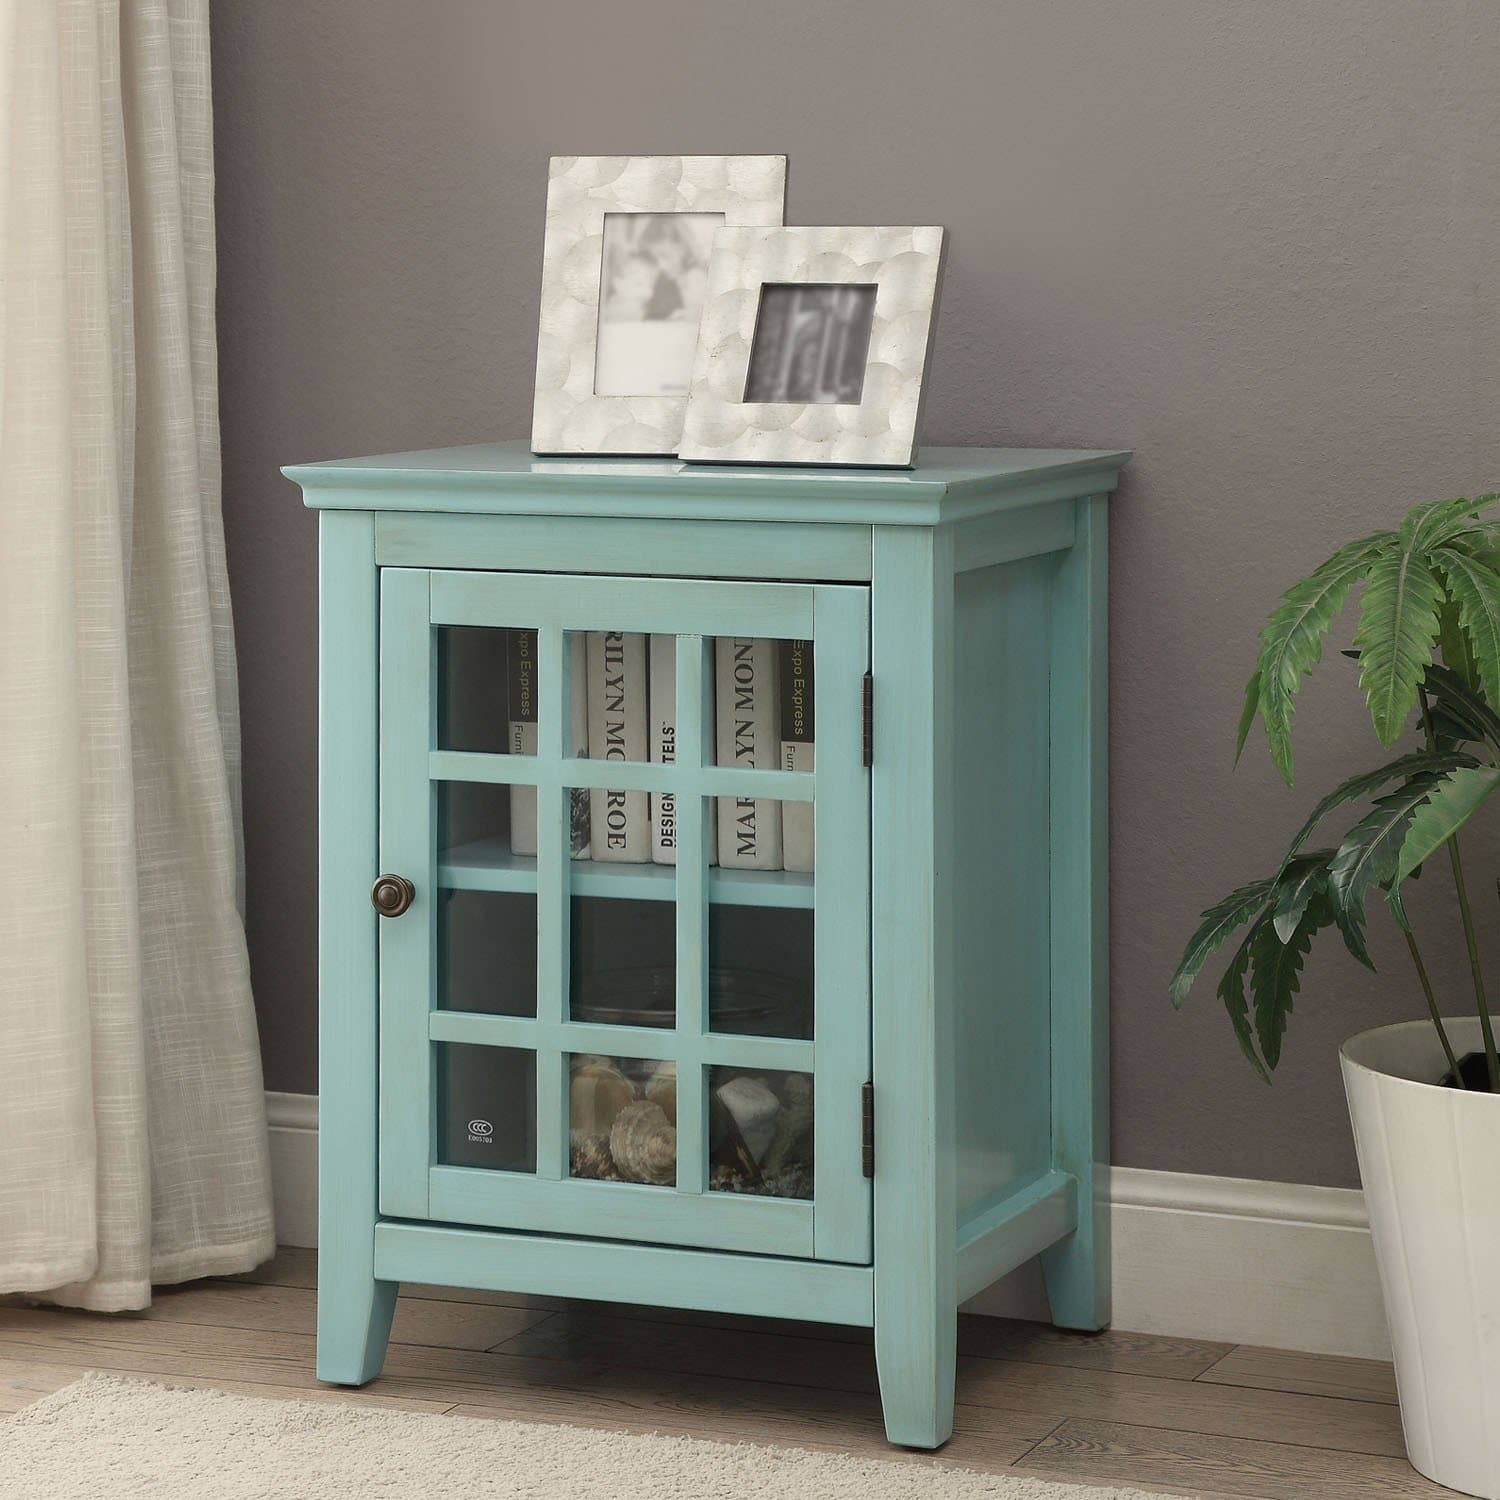 linon galway accent table turquoise free shipping orders white target vanity chinese ceramic lamps christmas tablecloth and runner cordless battery operated bar cabinet nautical